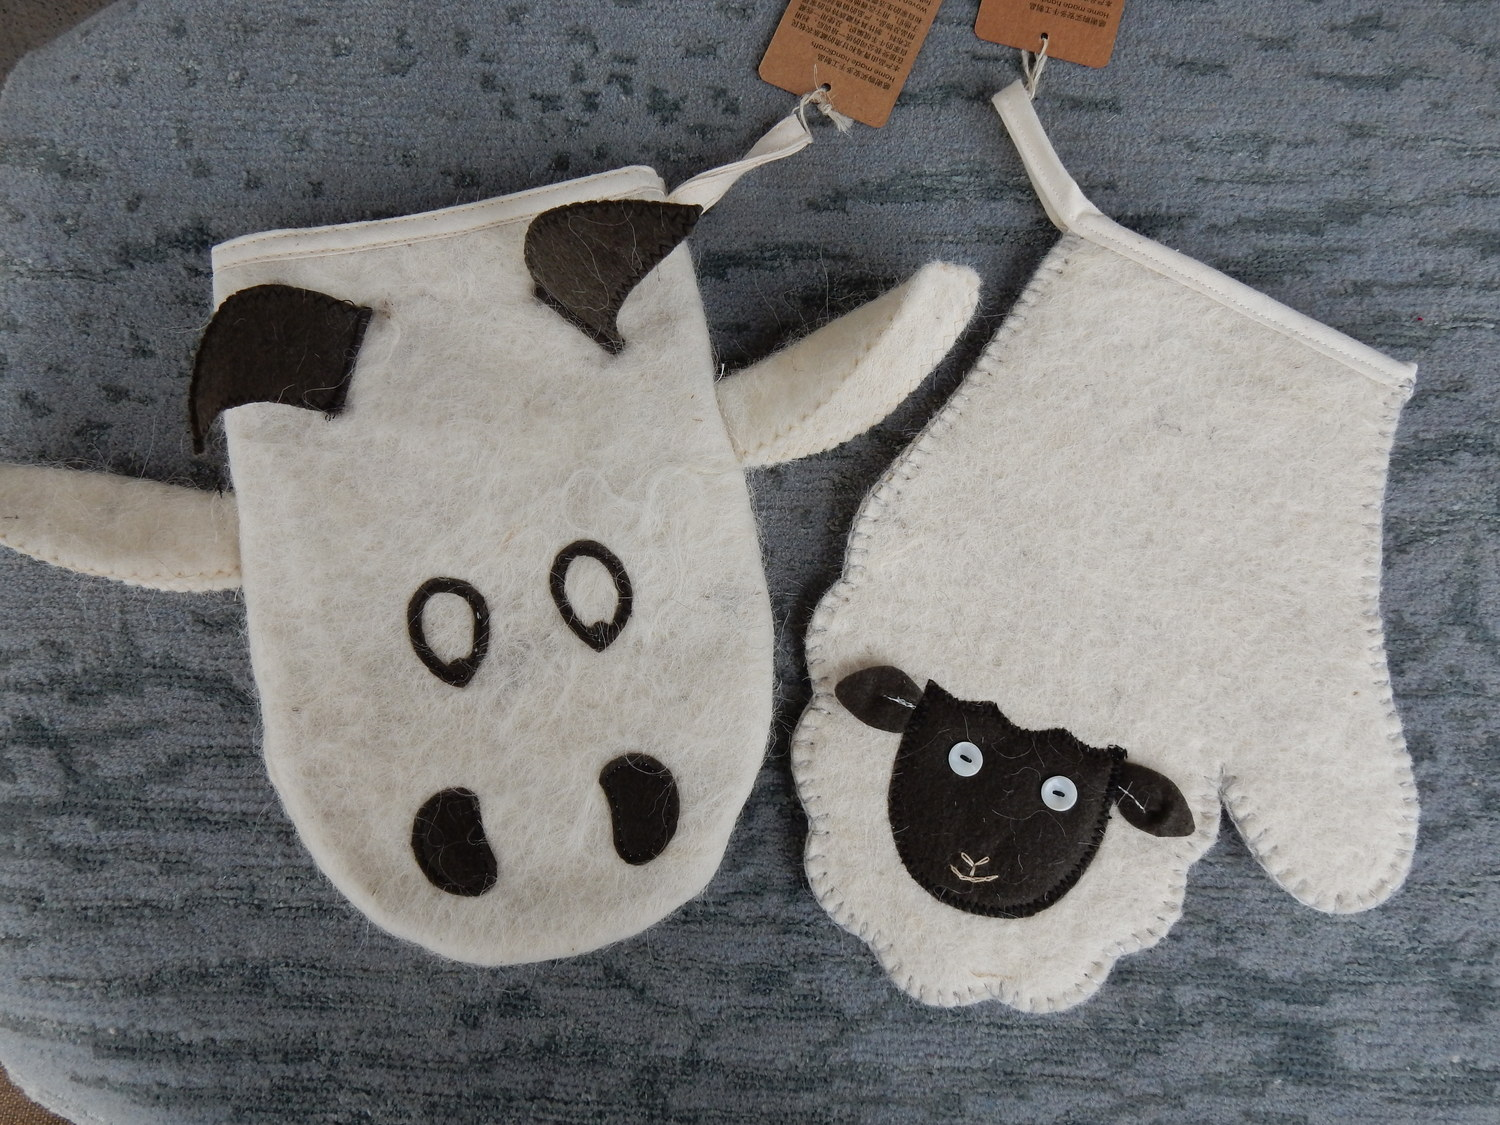 Amdo Oven Gloves